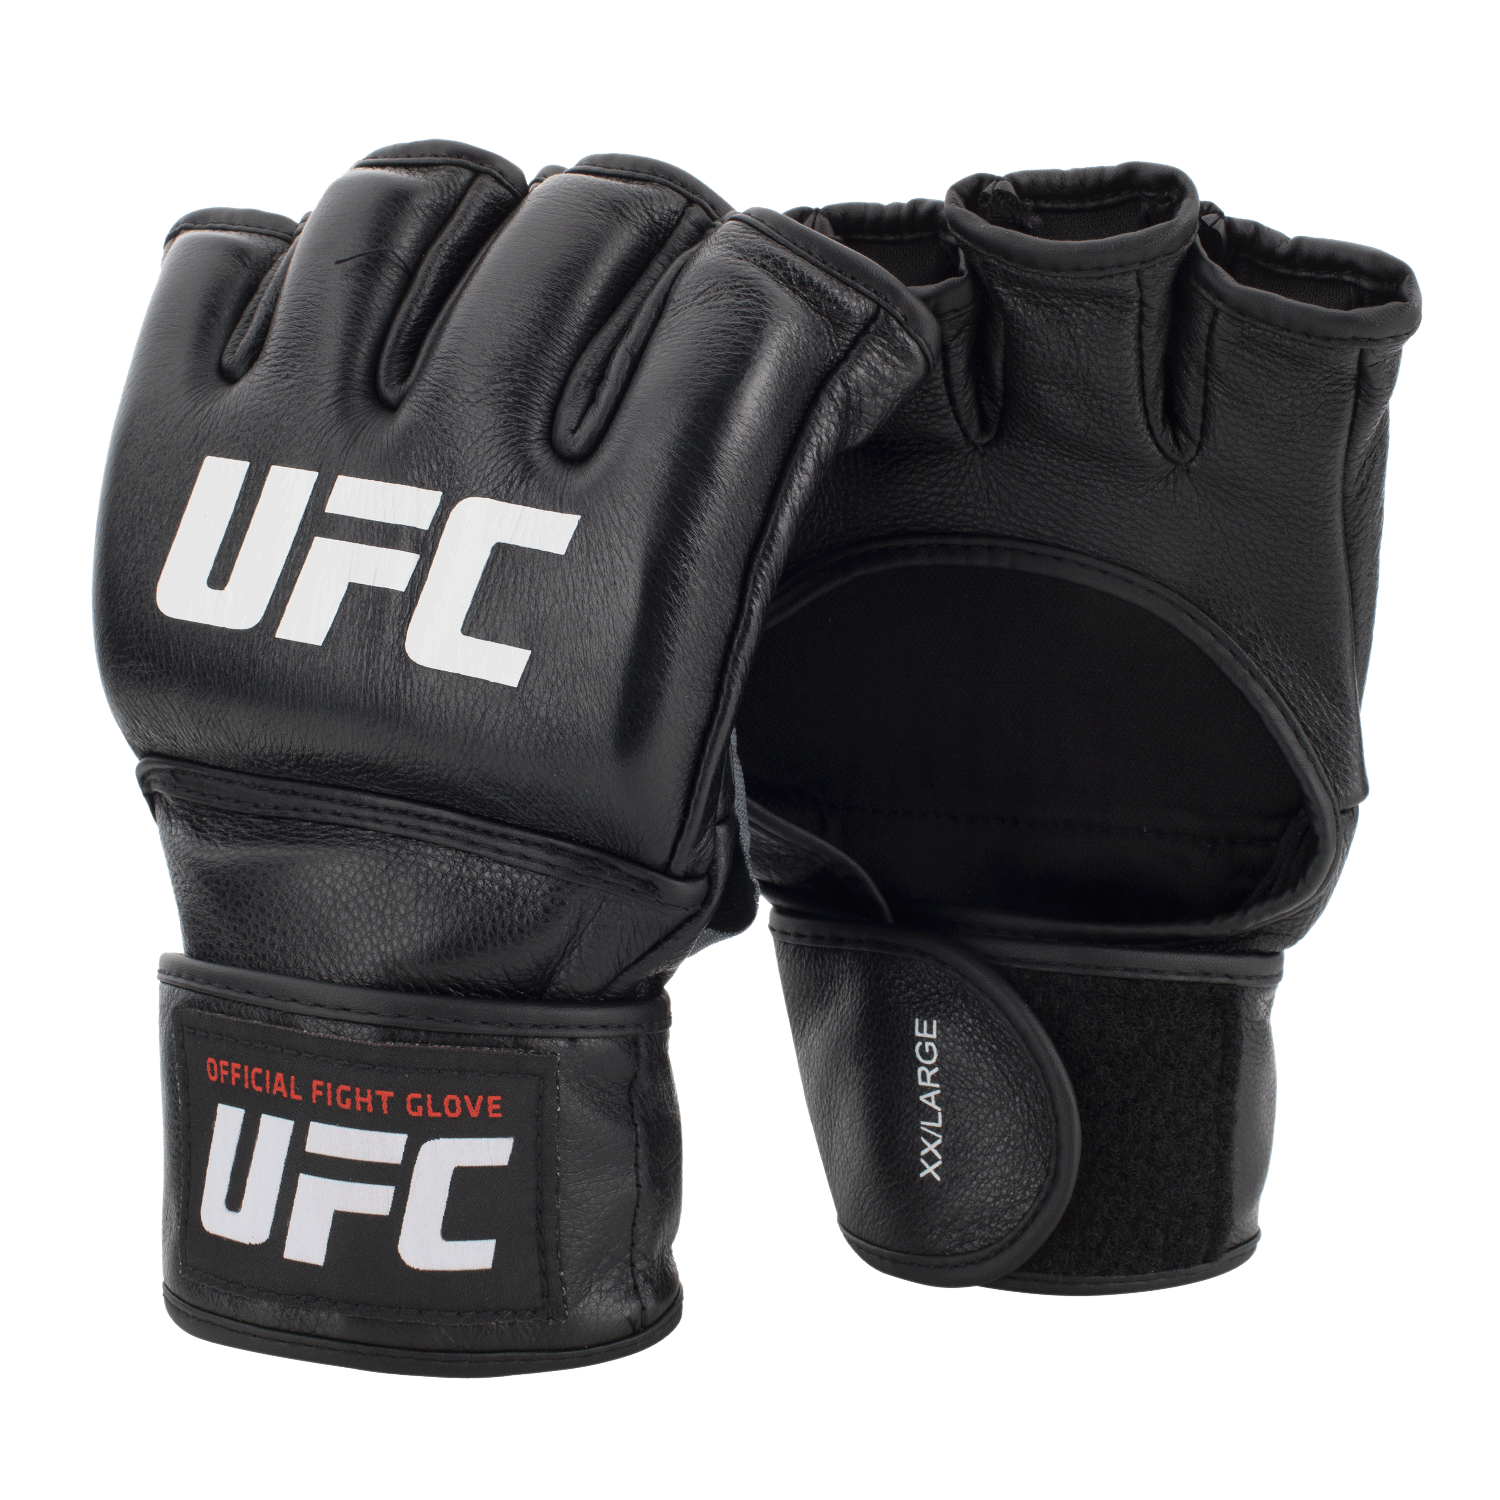 Official-Pro-Fight-Glove_bk-1.png